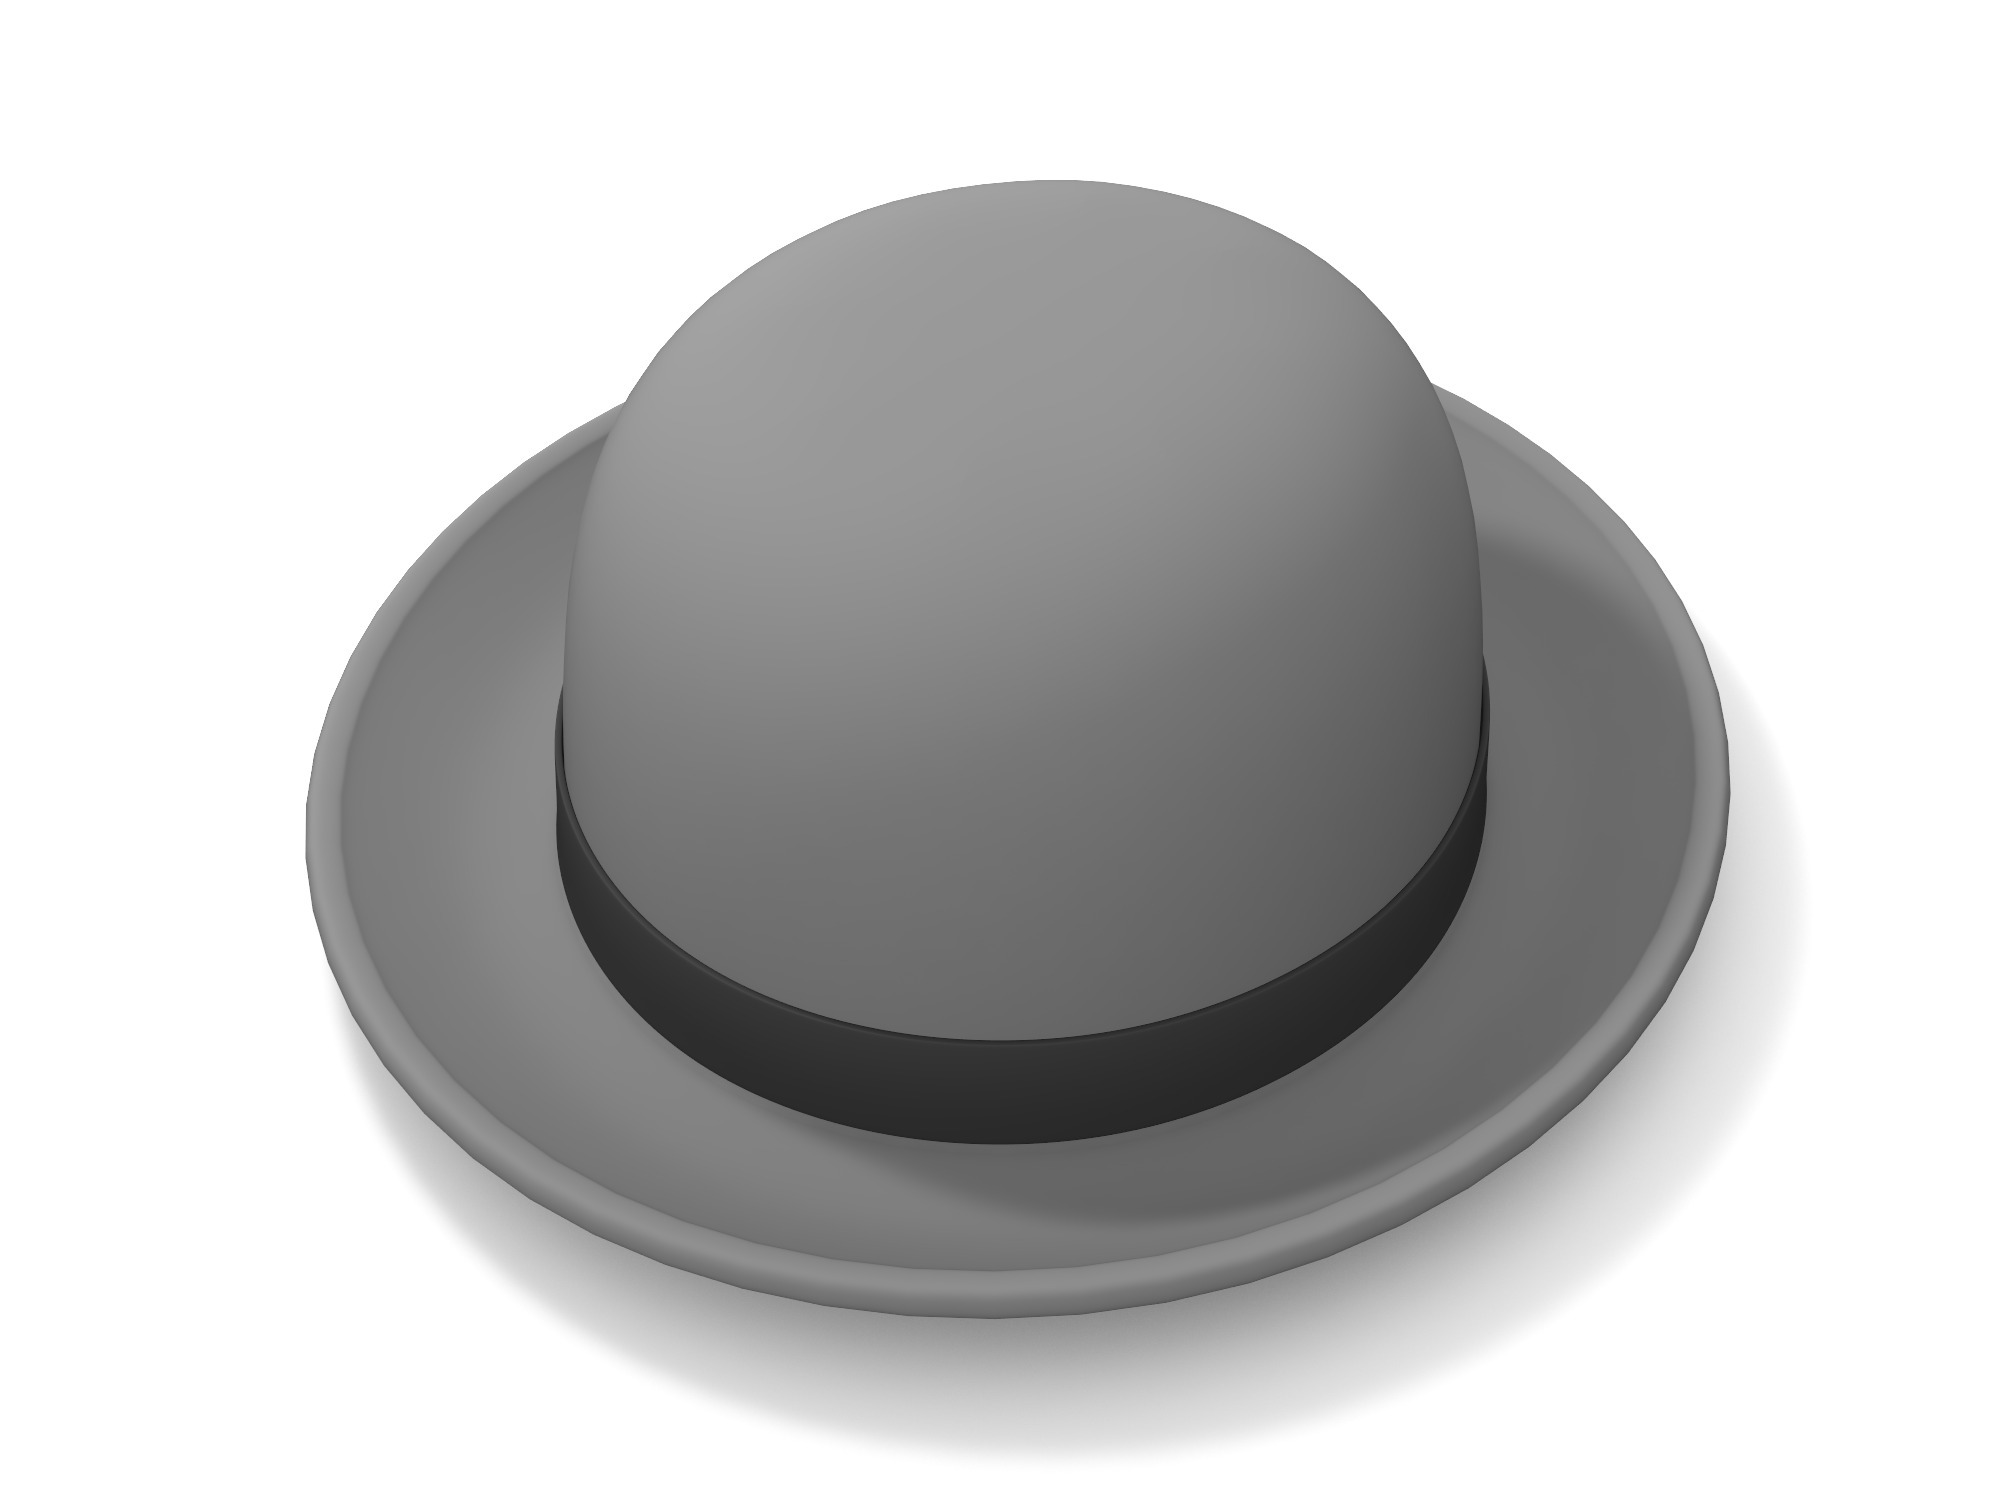 Bowler Hat - 3D design by Vectary assets Oct 11, 2018